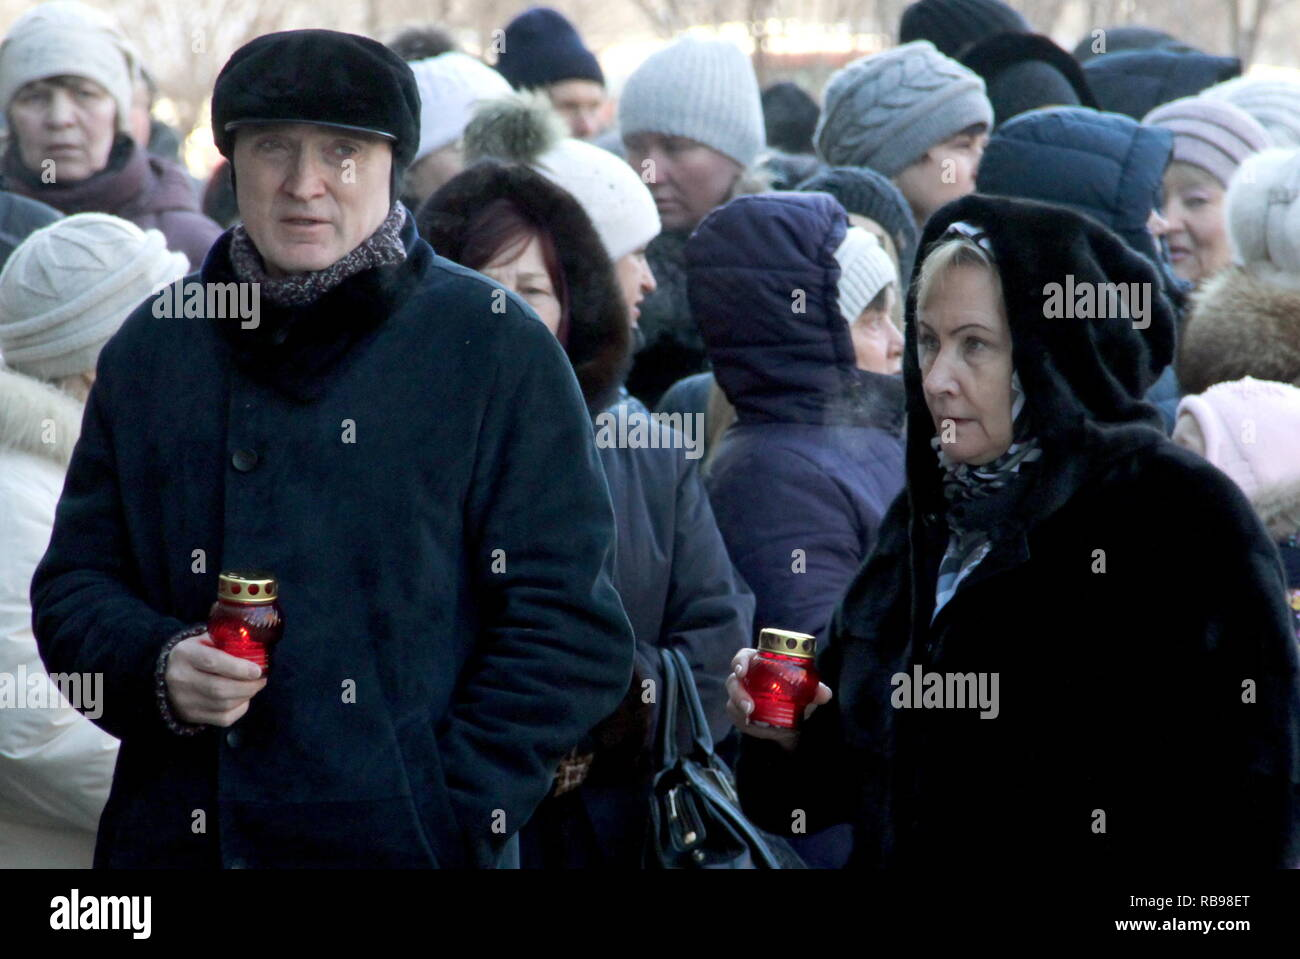 Magnitogorsk, Russia. 08th Jan, 2019. CHELYABINSK REGION, RUSSIA - JANUARY 8, 2019: Chelyabinsk Region Governor Boris Dubrovsky with his wife Vera (front) at a memorial religious service for the Magnitogorsk gas explosion victims; on December 31, 2018, at 4:00am, a domestic gas explosion caused a partial collapse of the residential building at 164 Karla Marksa Avenue killing 39 people. Ilya Moskovets/TASS Credit: ITAR-TASS News Agency/Alamy Live News - Stock Image